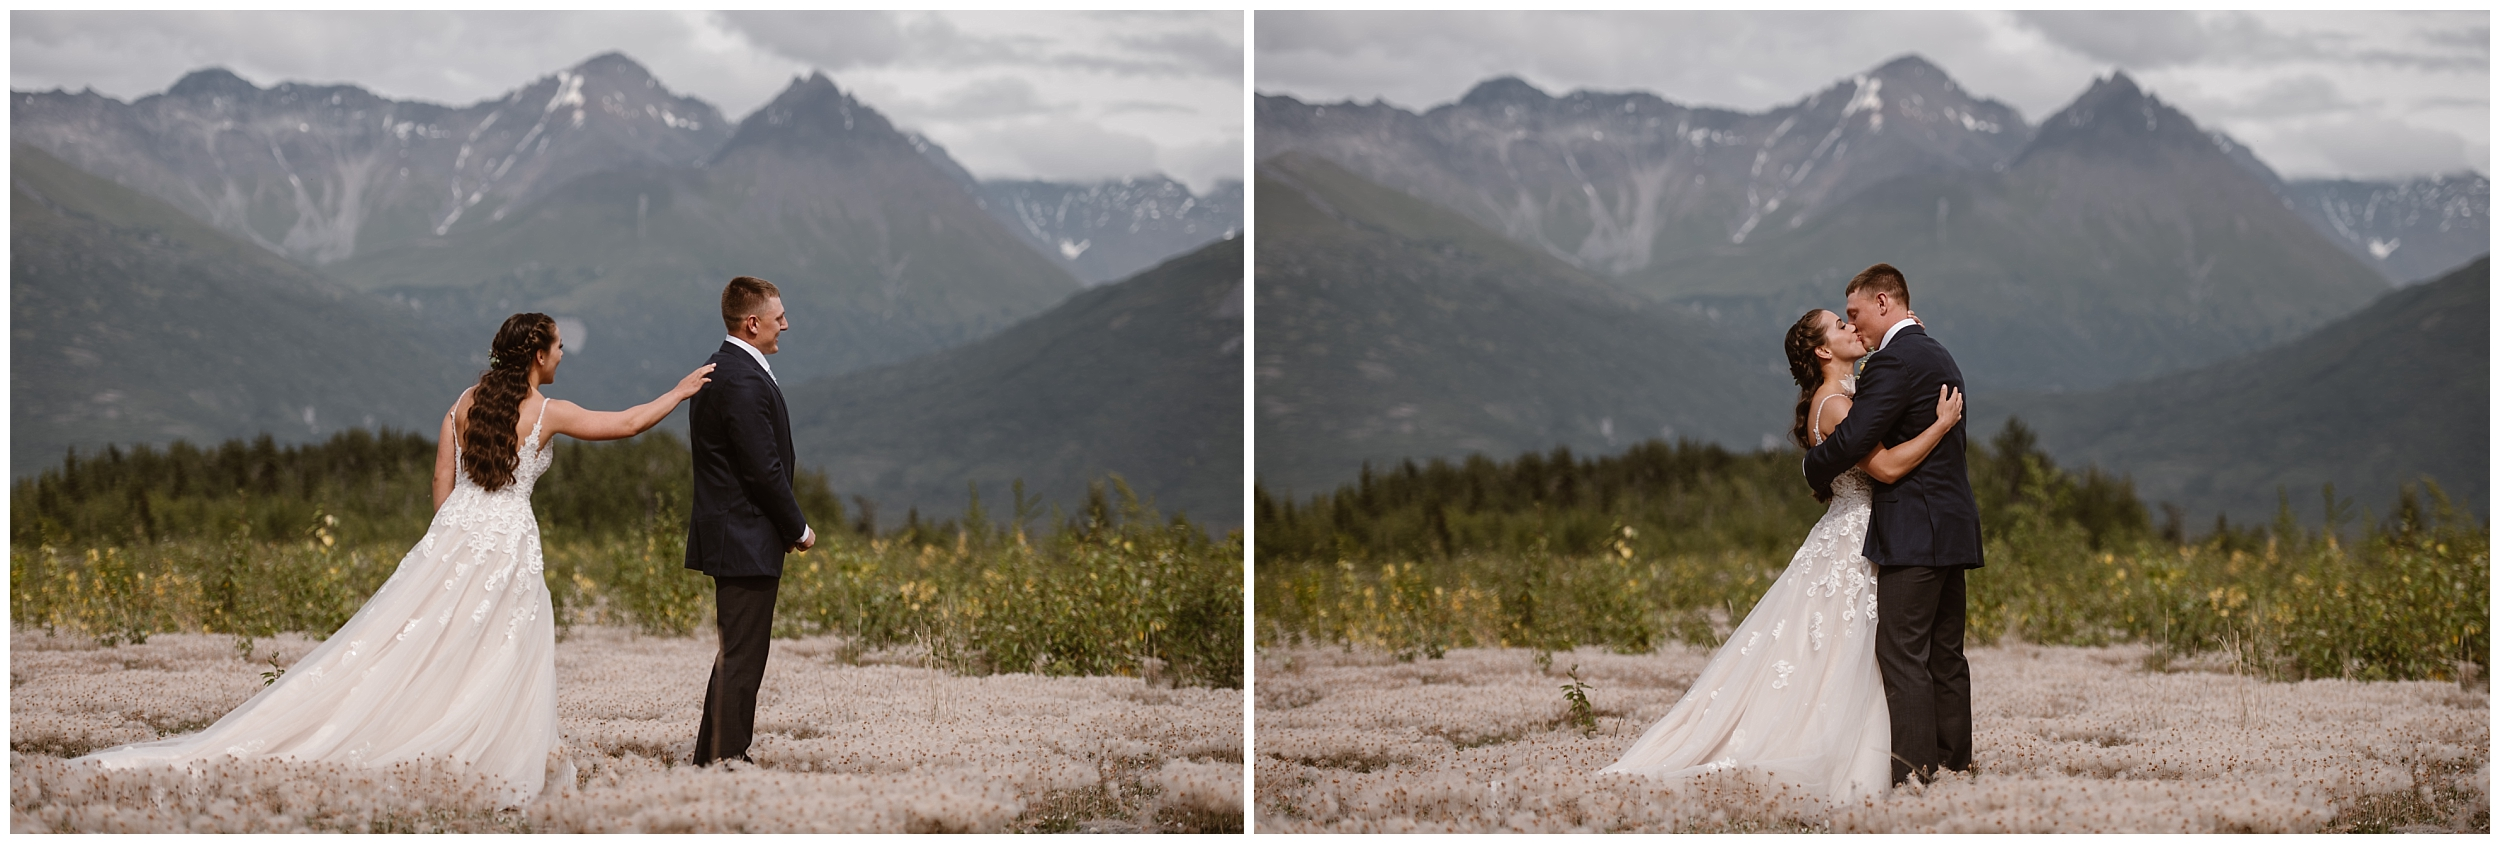 These side-by-side elopement pictures, captured by elopement wedding photographer Adventure Instead, show off a first look between Jordyn and Connor, a couple who had a destination elopement in Alaska.